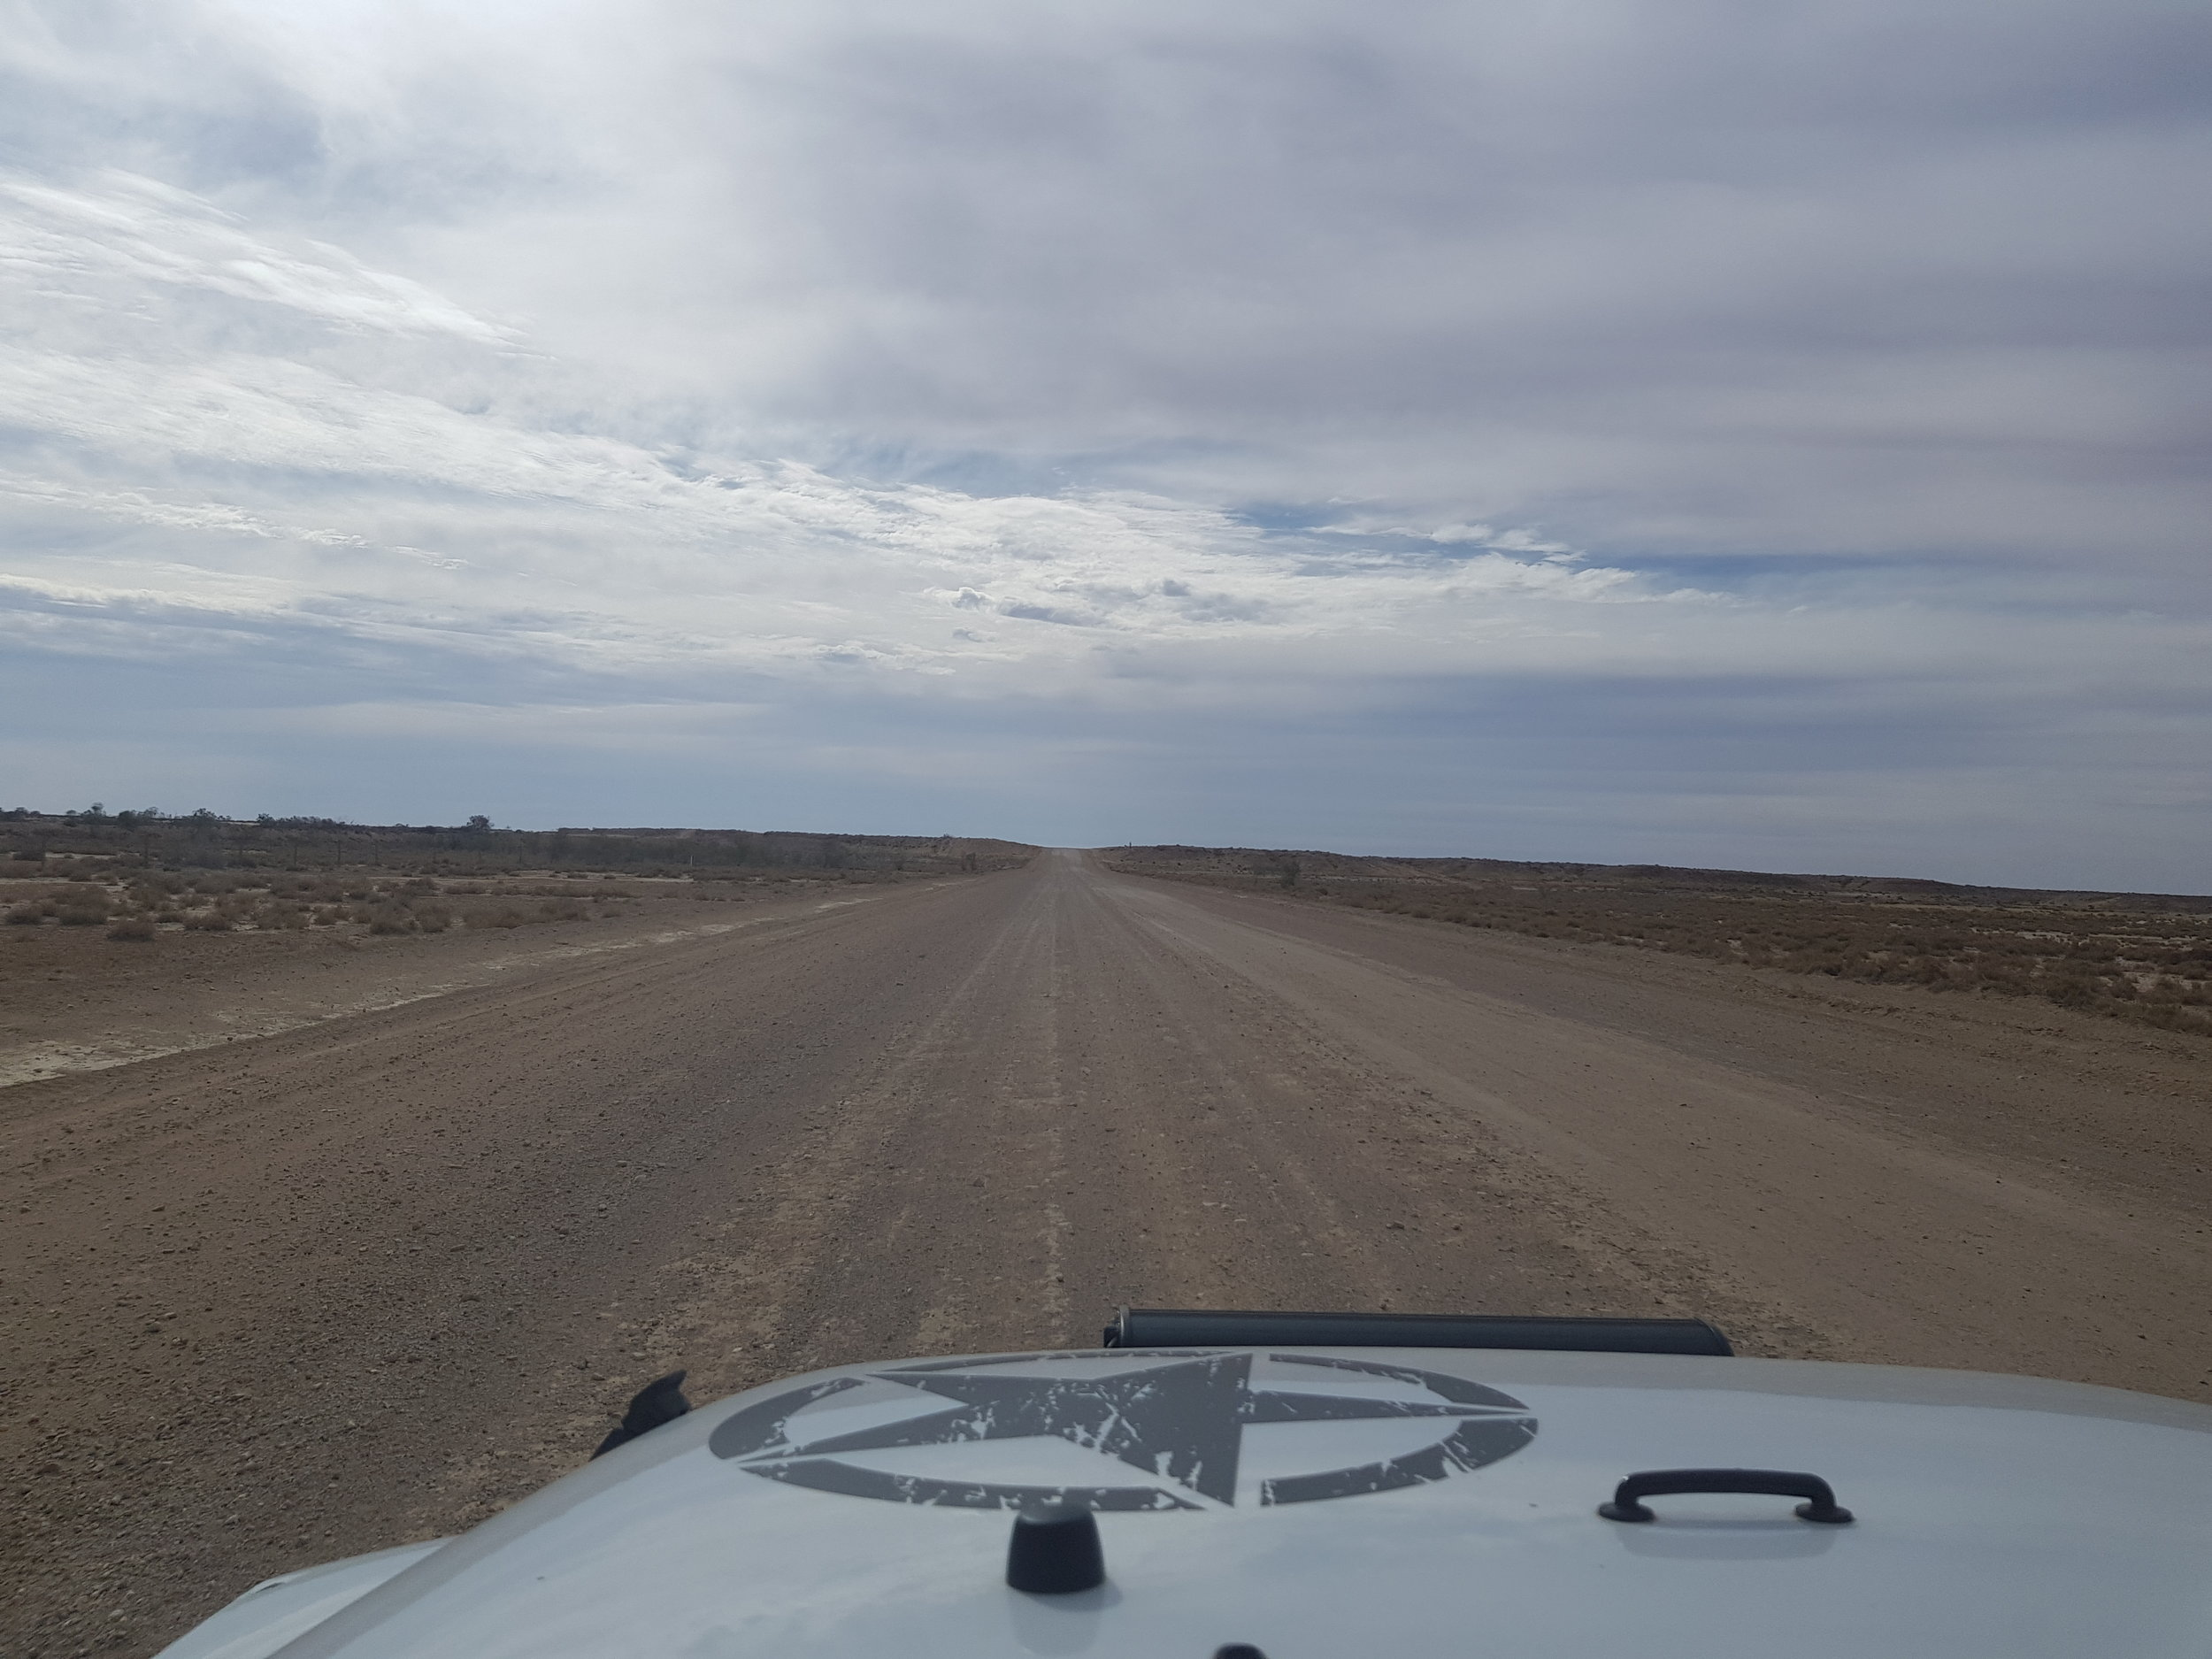 On the way to Marree…